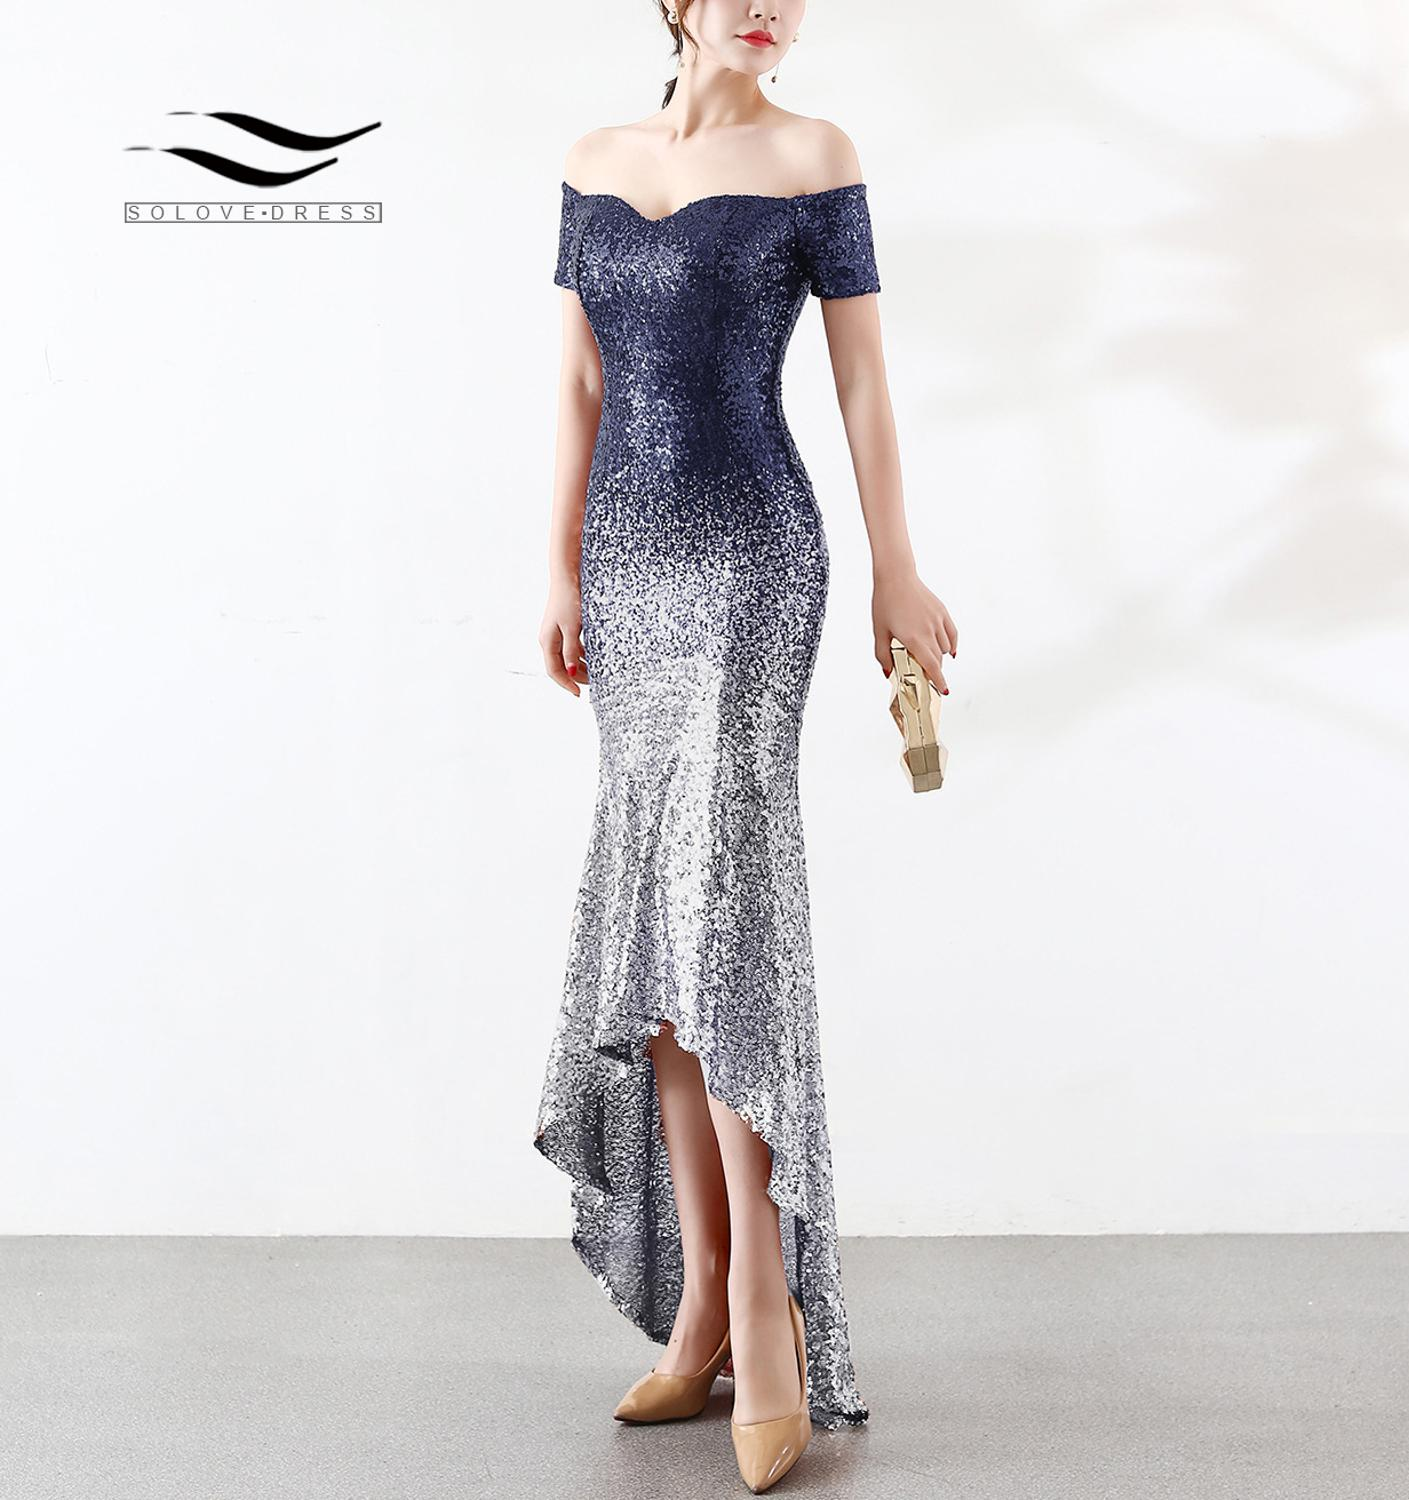 SOLOVEDRESS Sweetheart Gradient Color Sequin Cocktail Dress High-Low Off the Shoulder Party Dancing Dress Mermaid A Line C76